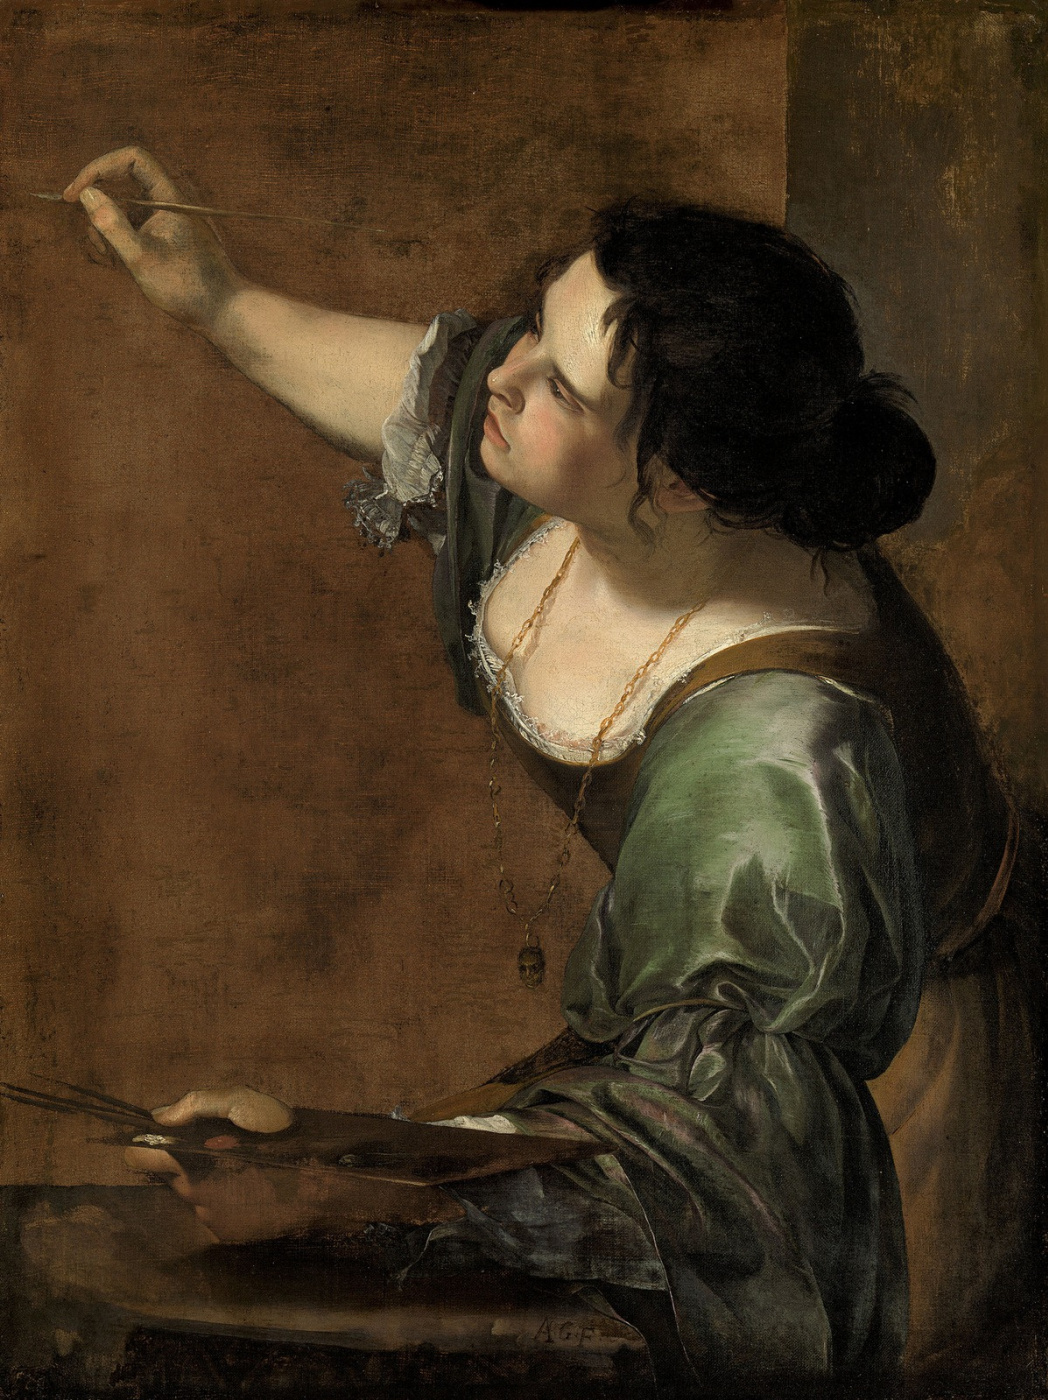 Artemisia Gentileschi. Self-portrait in the form of an allegory of painting